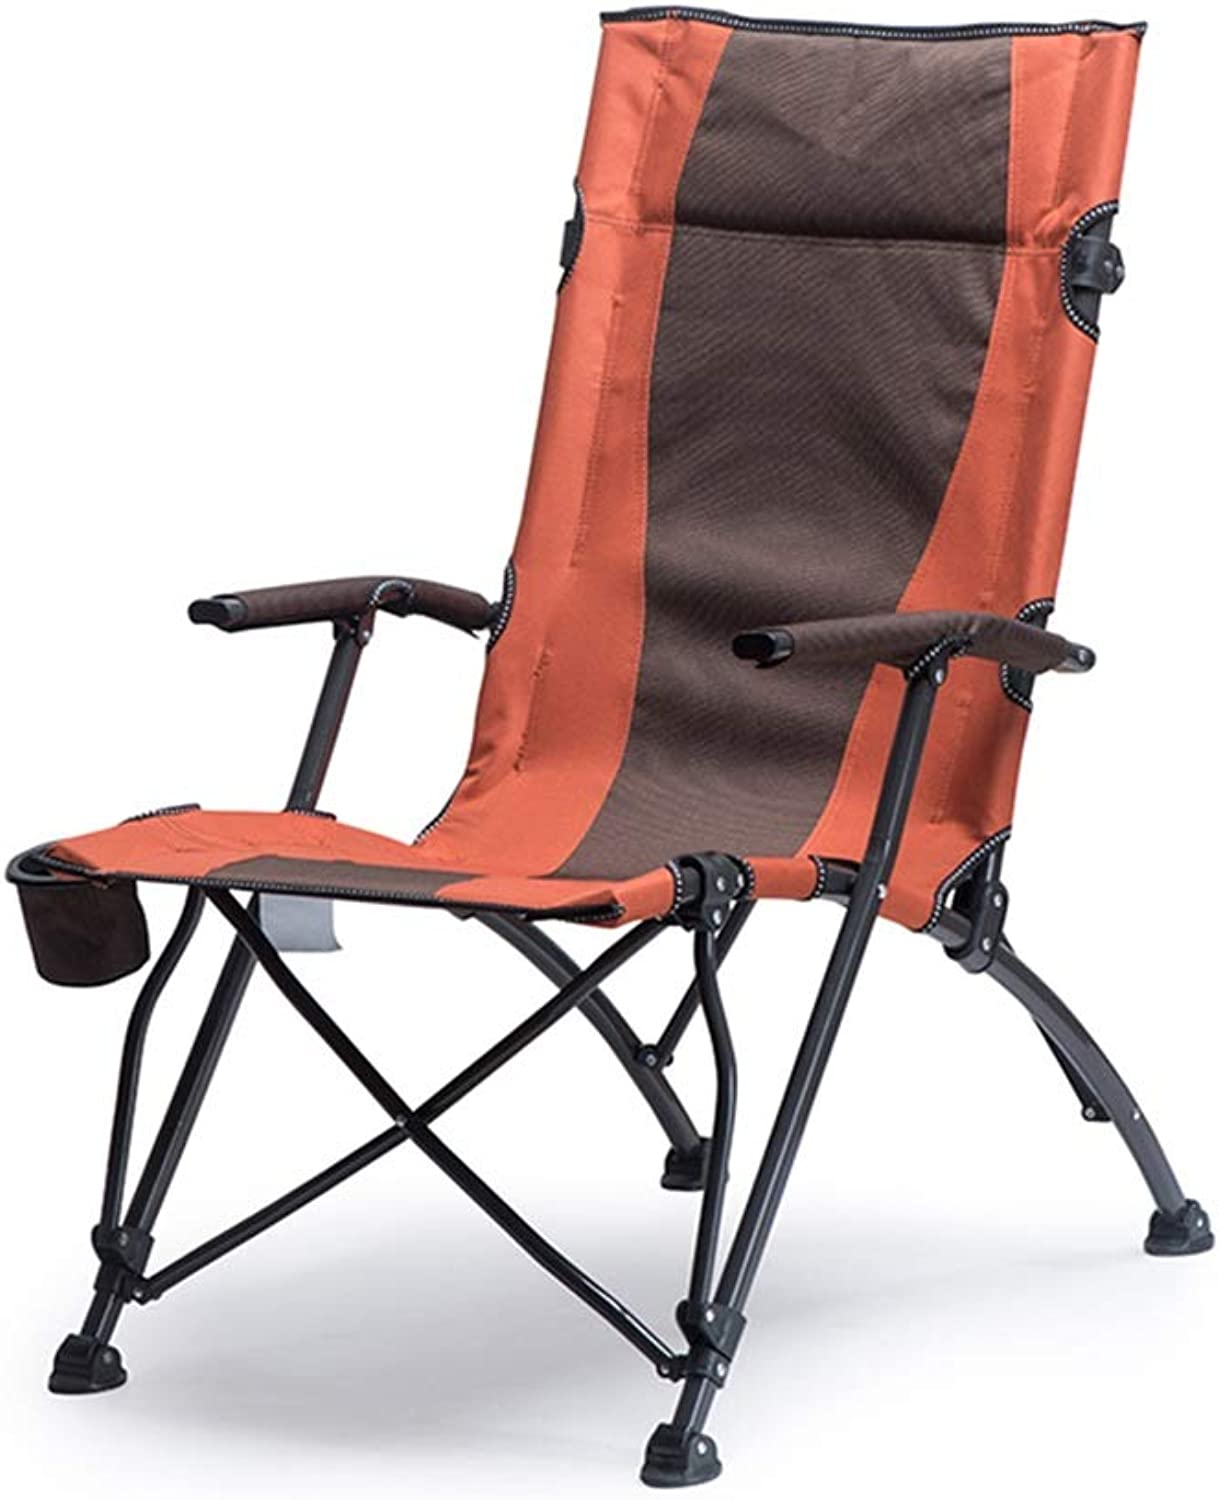 Lounge Chairs Folding Chair Recliner Camping Chair Portable Beach Garden Barbecue Fishing Bedroom Adult, Bearing 150kg